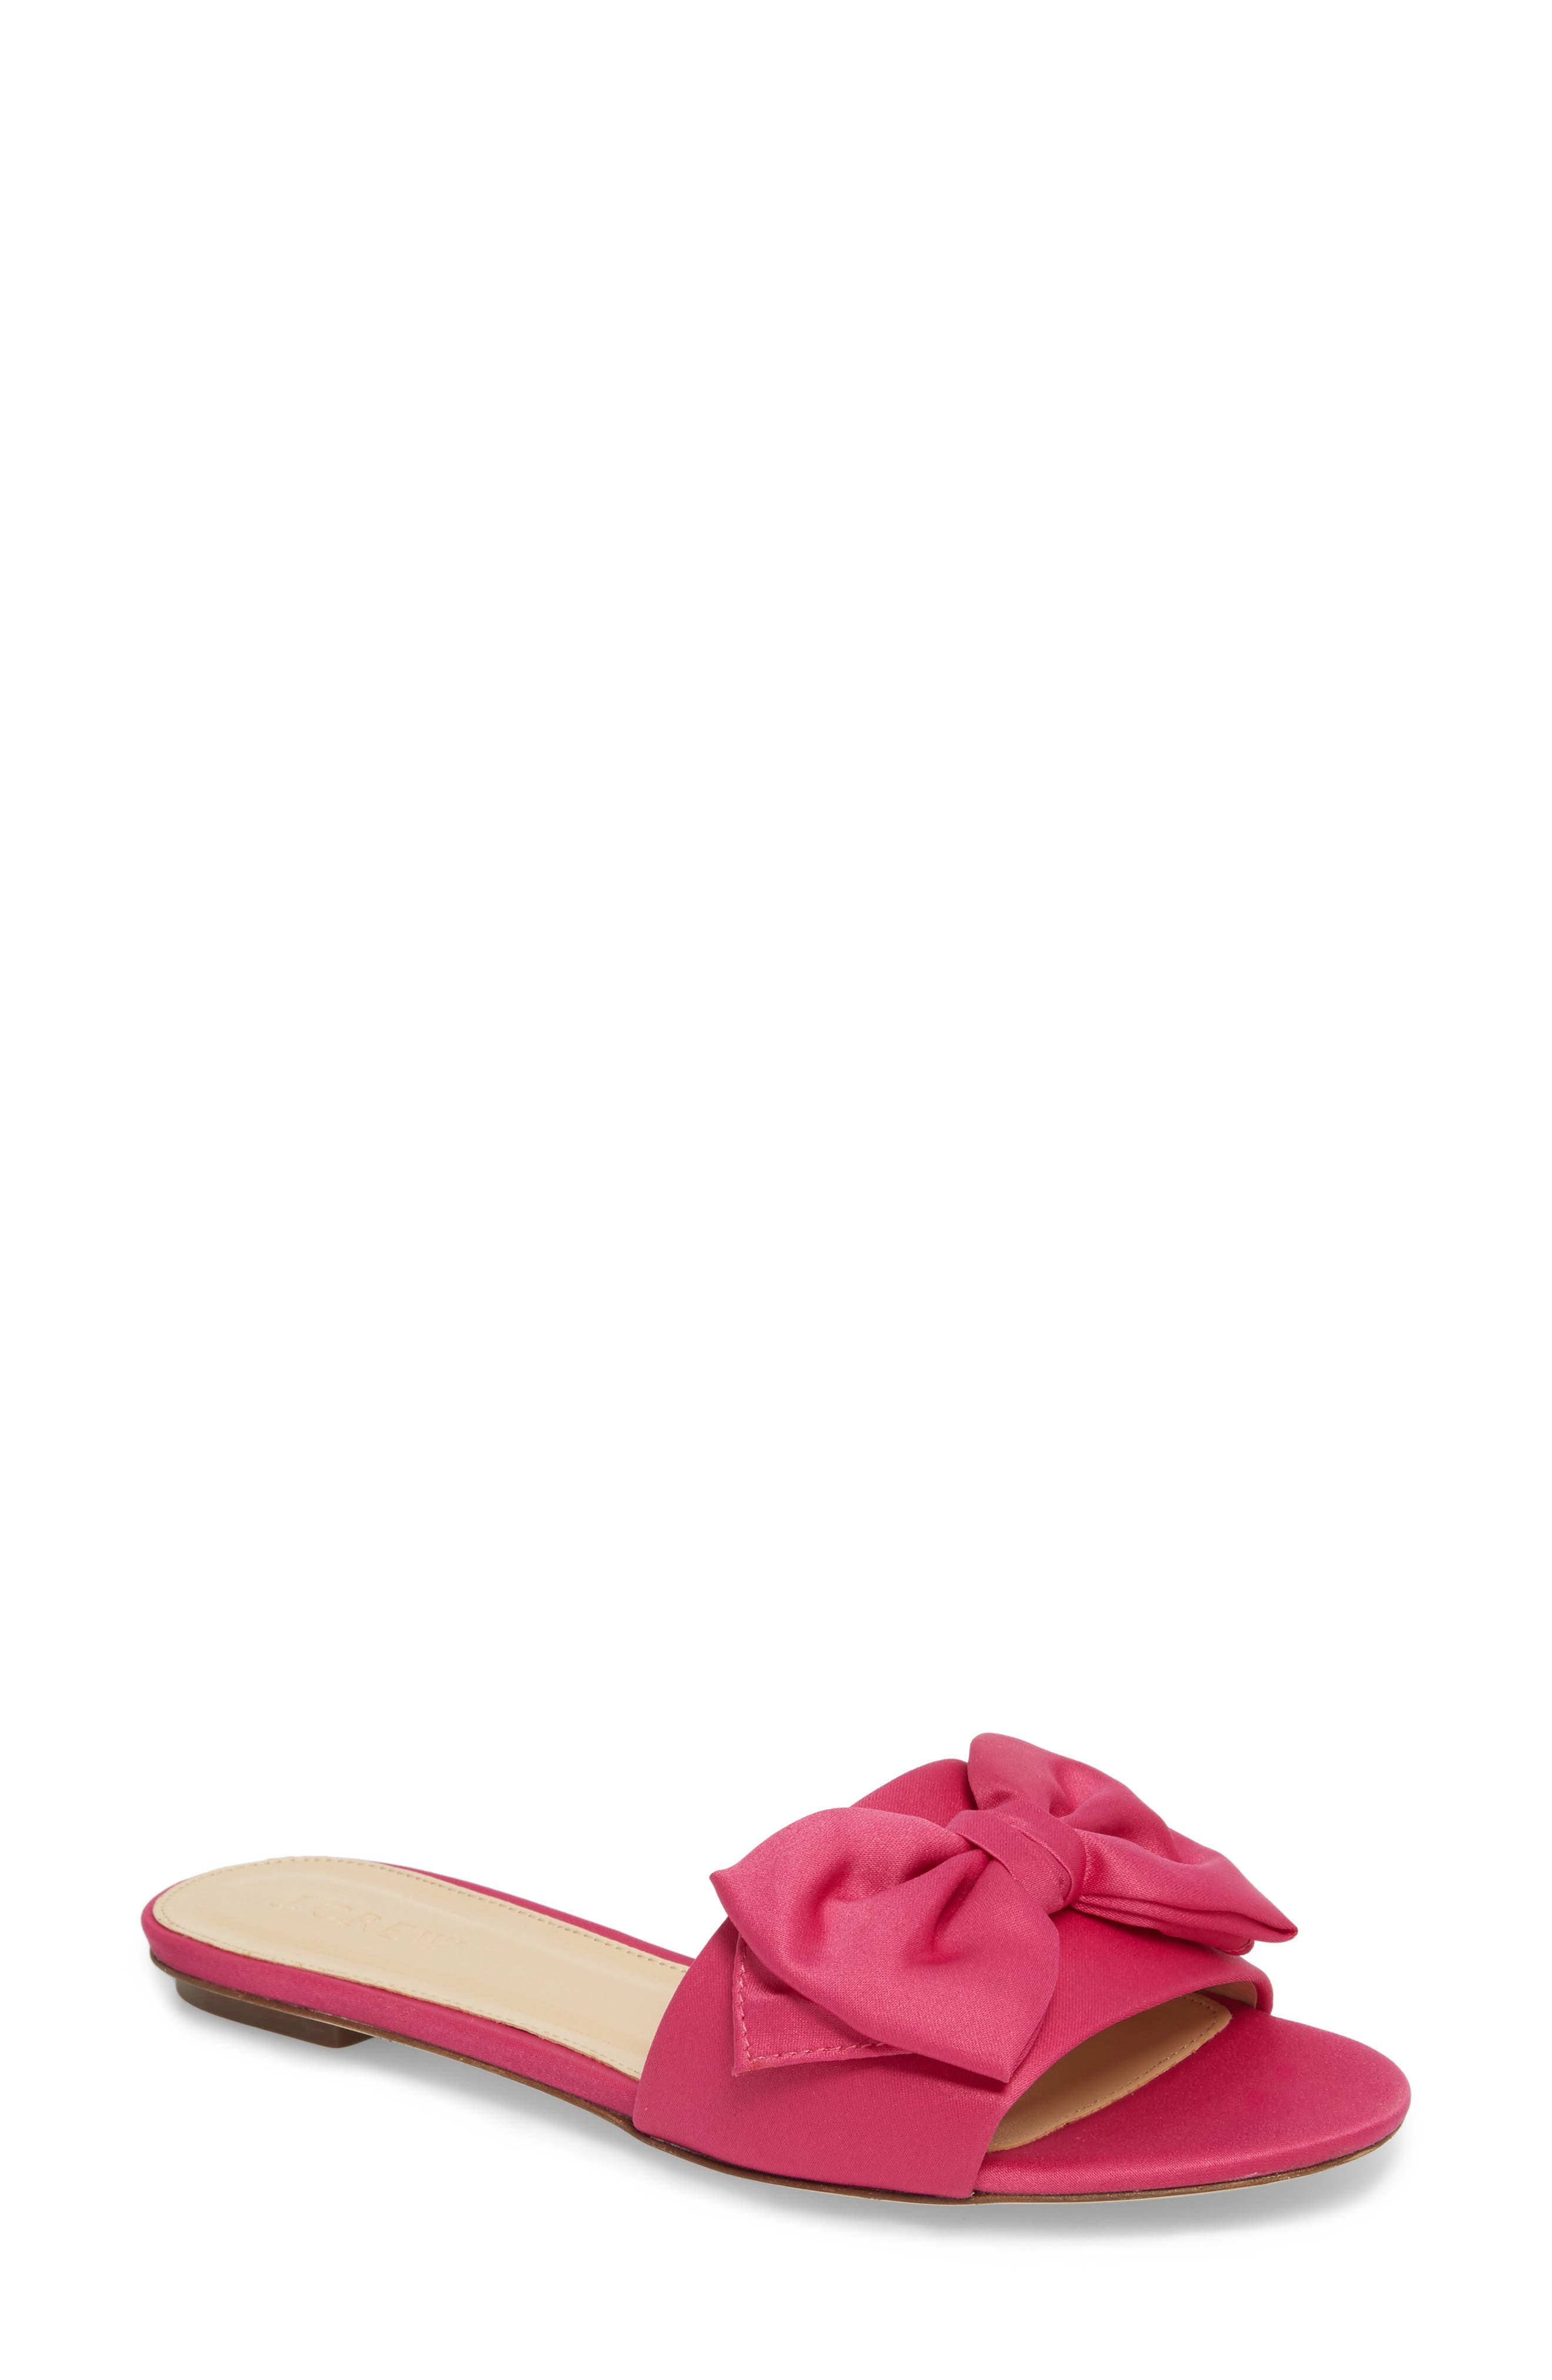 Alternate Image 1 Selected - J.Crew Knotted Satin Bow Slide (Women)